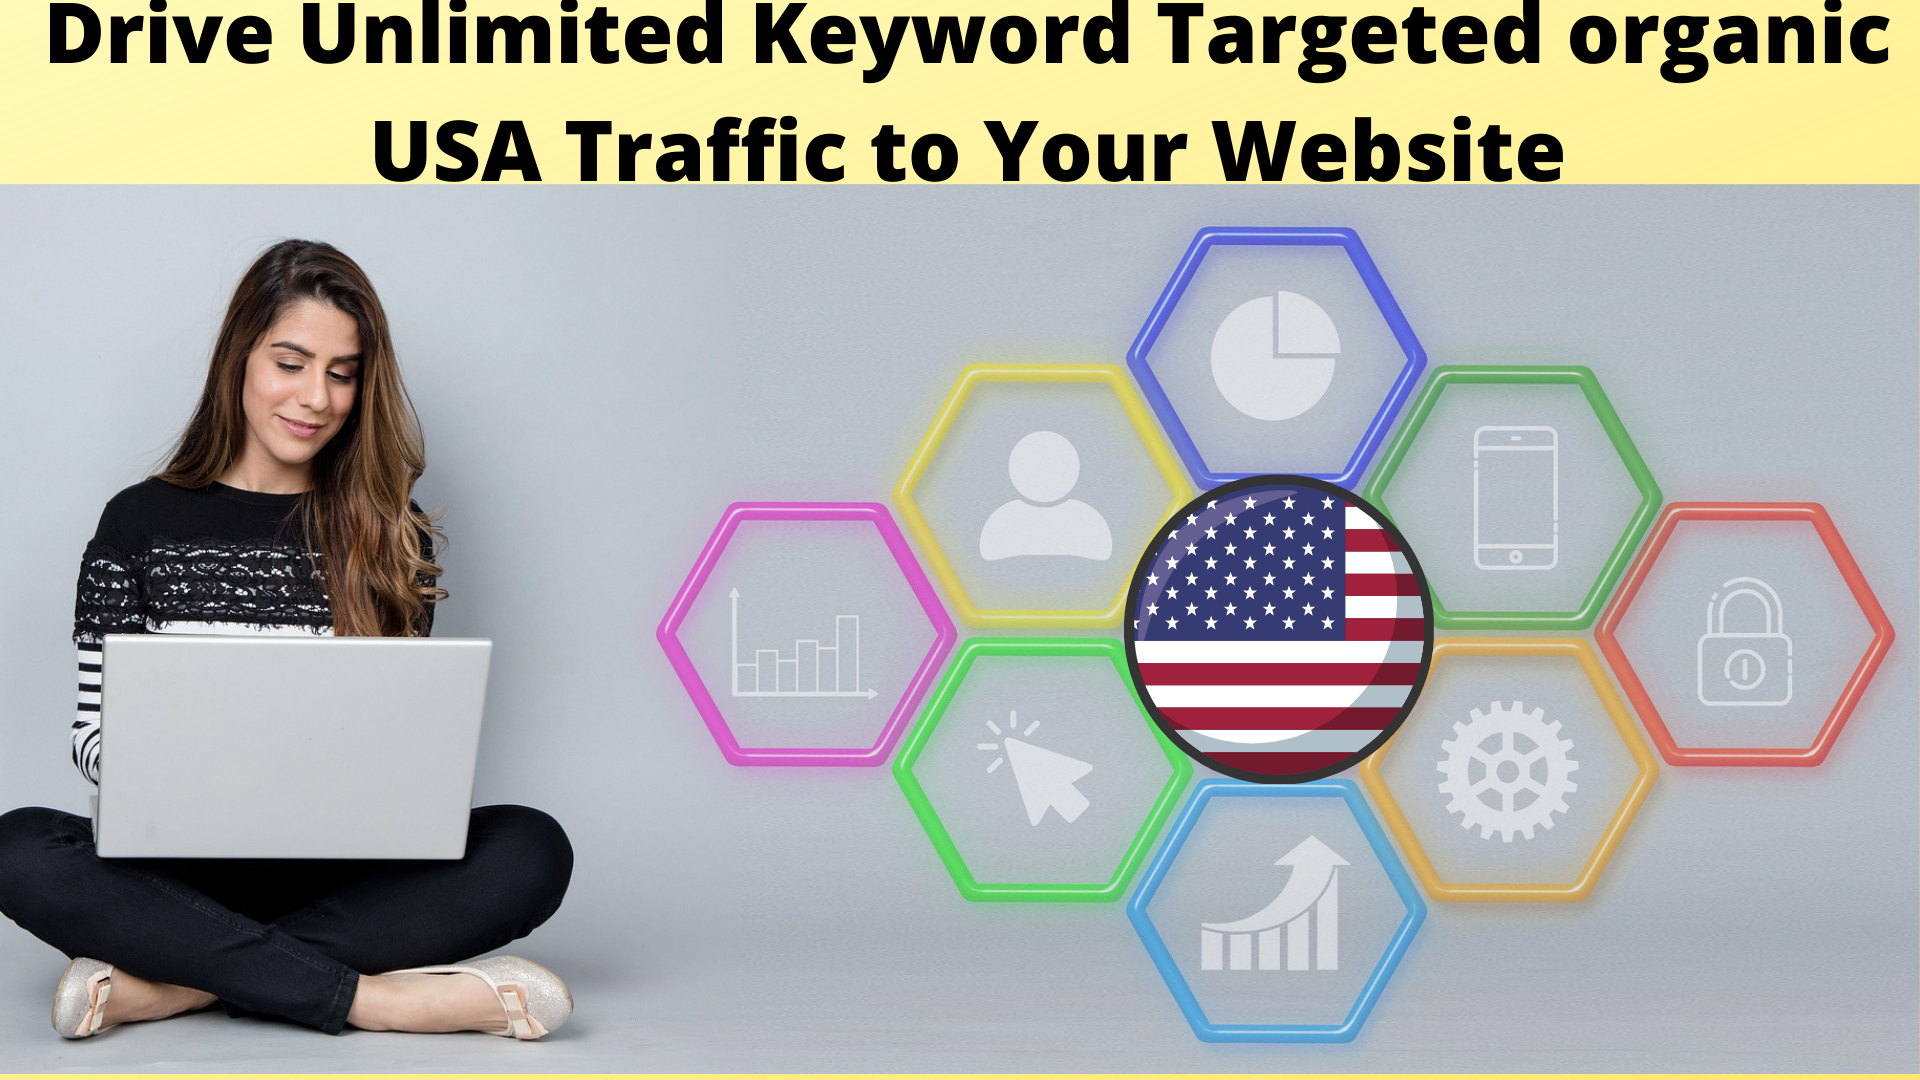 I Will Drive Unlimited keyword targeted organic usa traffic to your website